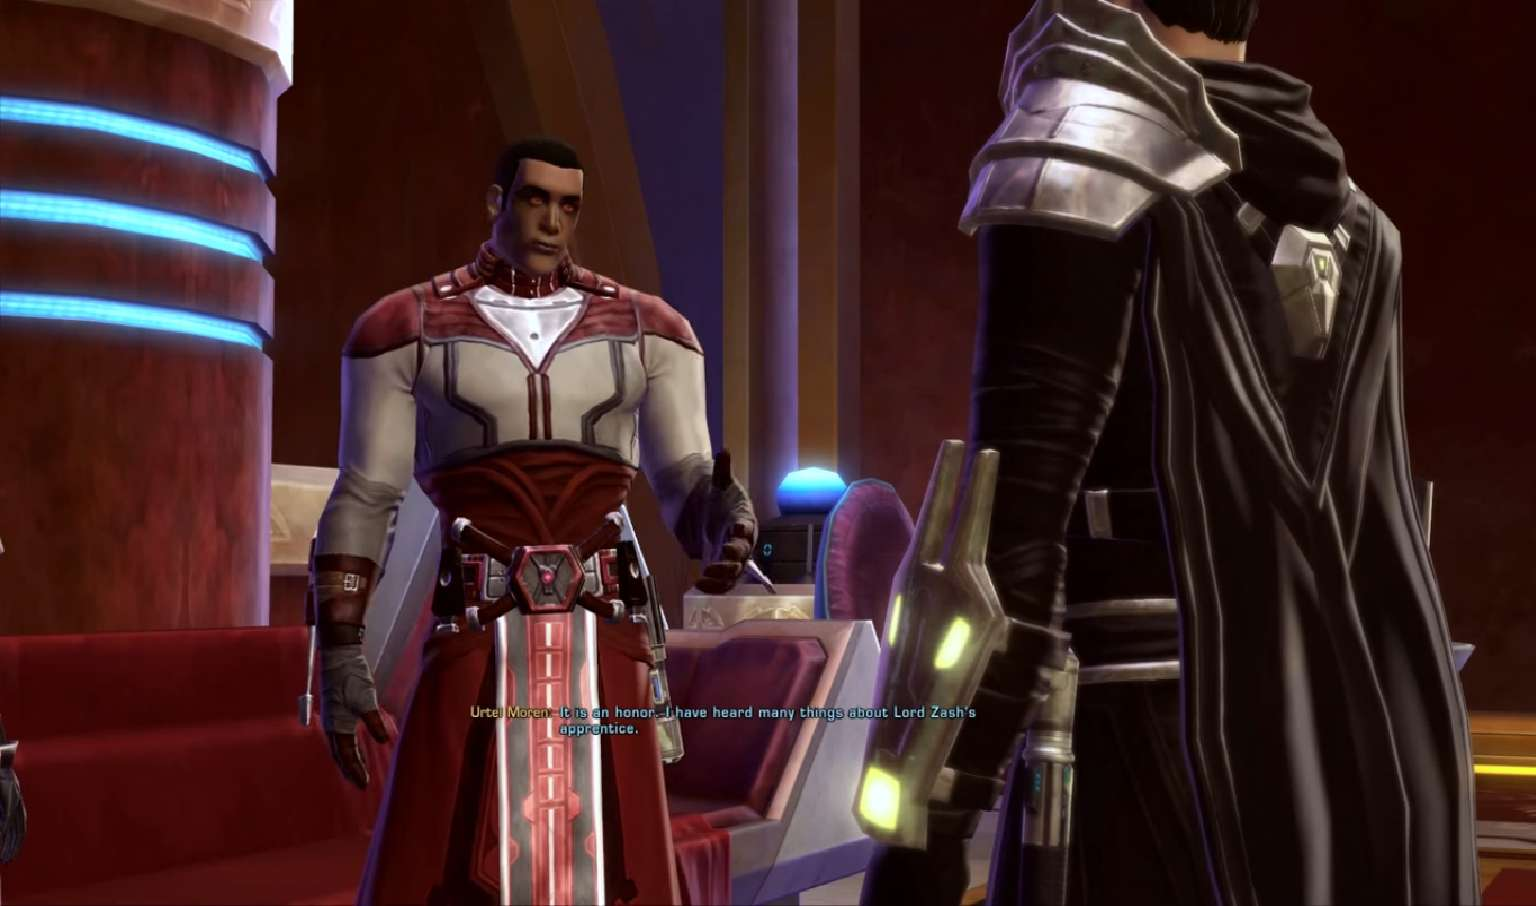 Star Wars The Old Republic Releases 6.1 Patch Notes Despite Delaying The Actual Patch